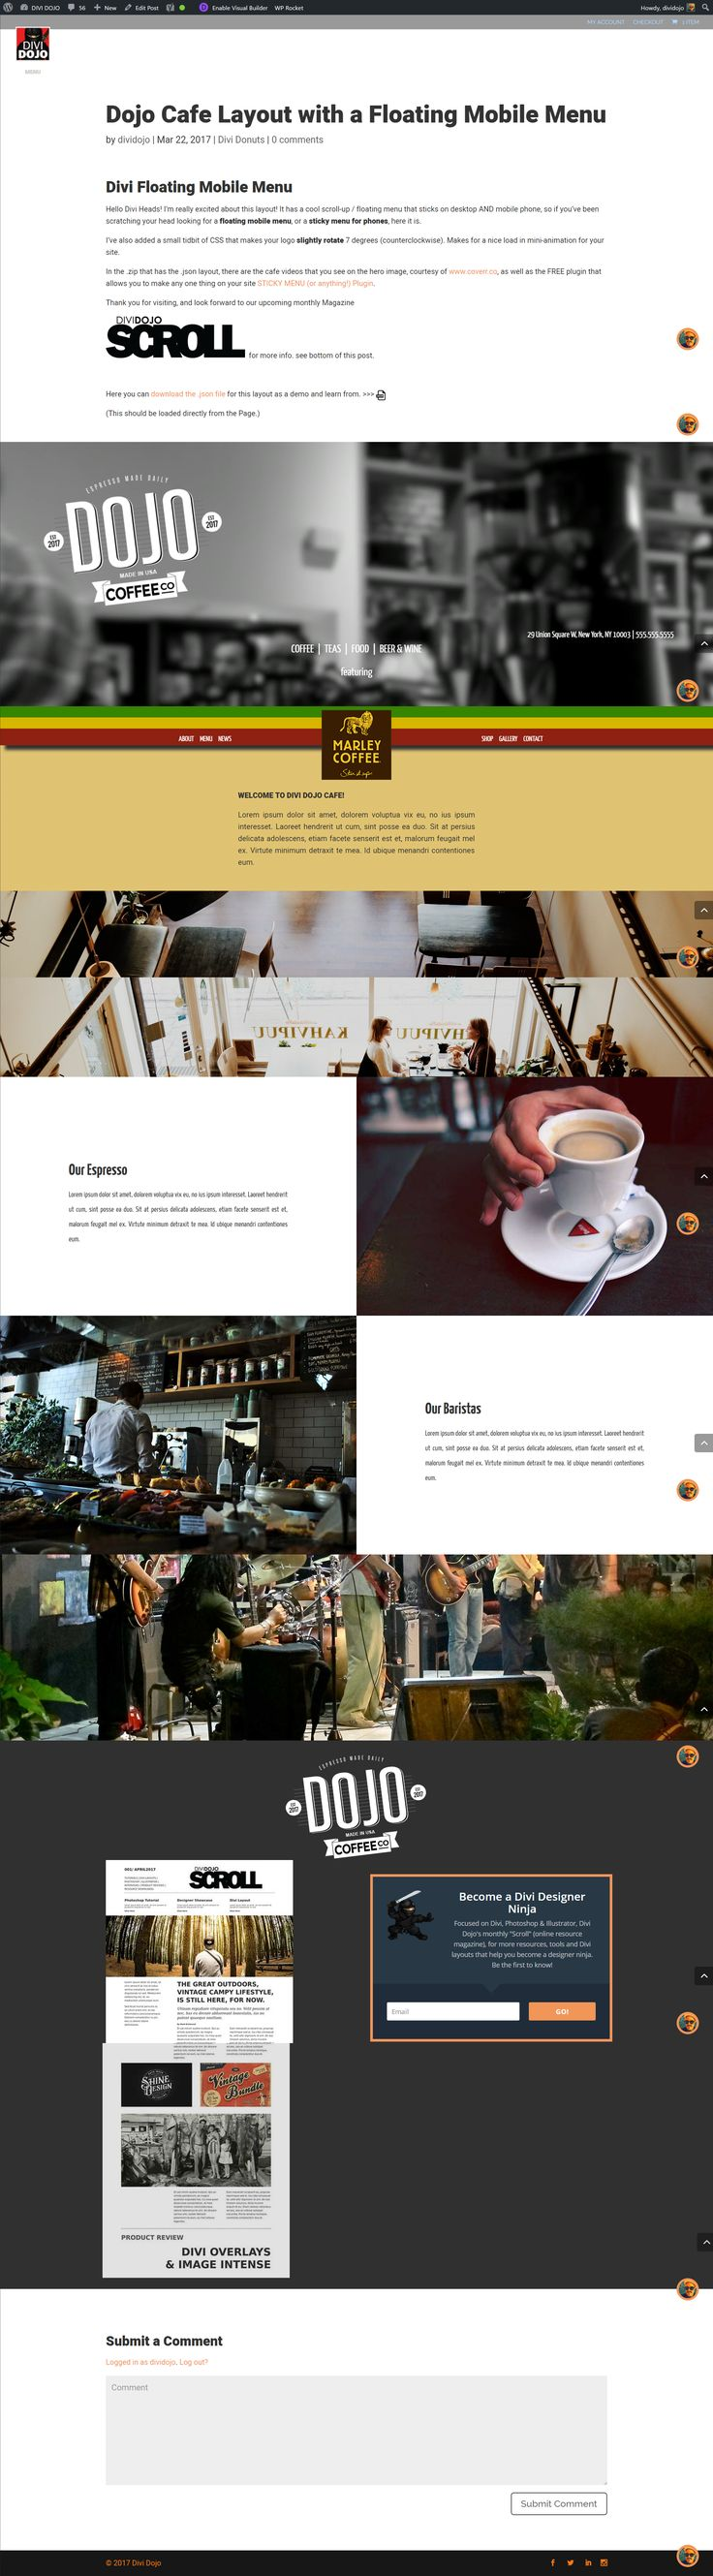 Dojo Coffee Shop - Divi layout with sticky menu for mobile